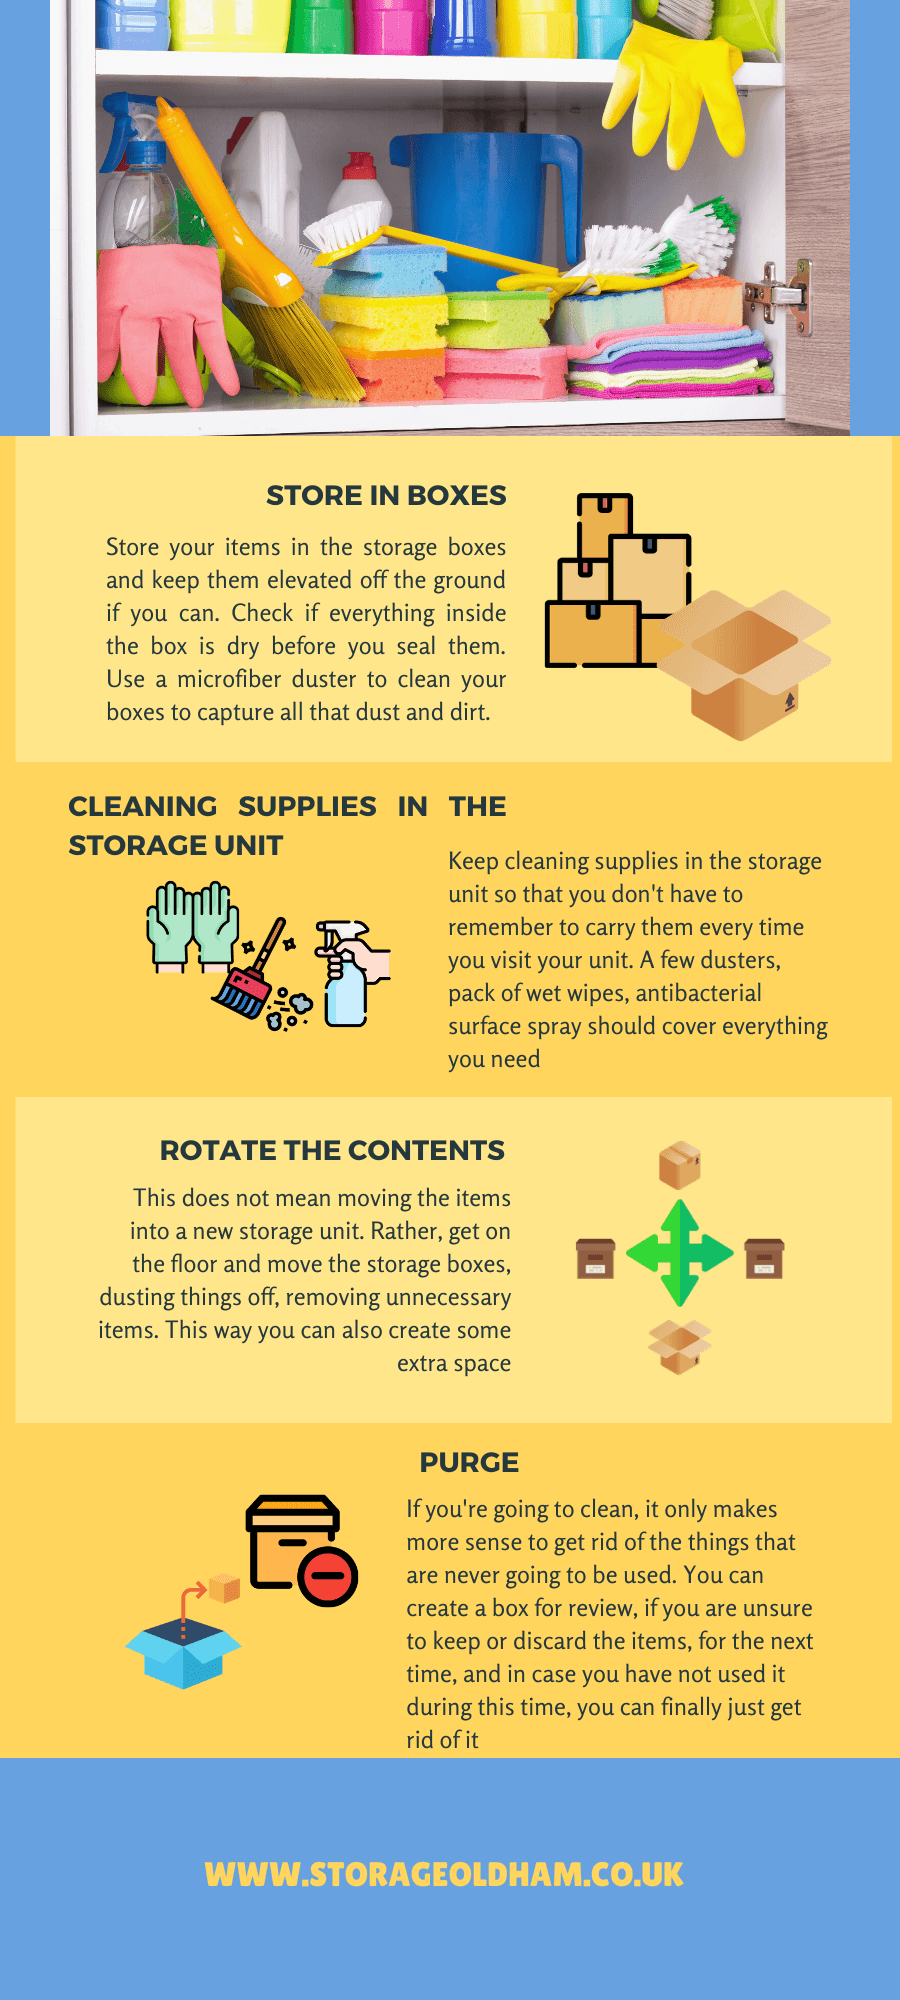 How to clean your self-storage unit? 5 easy steps to keep your storage units clean 1